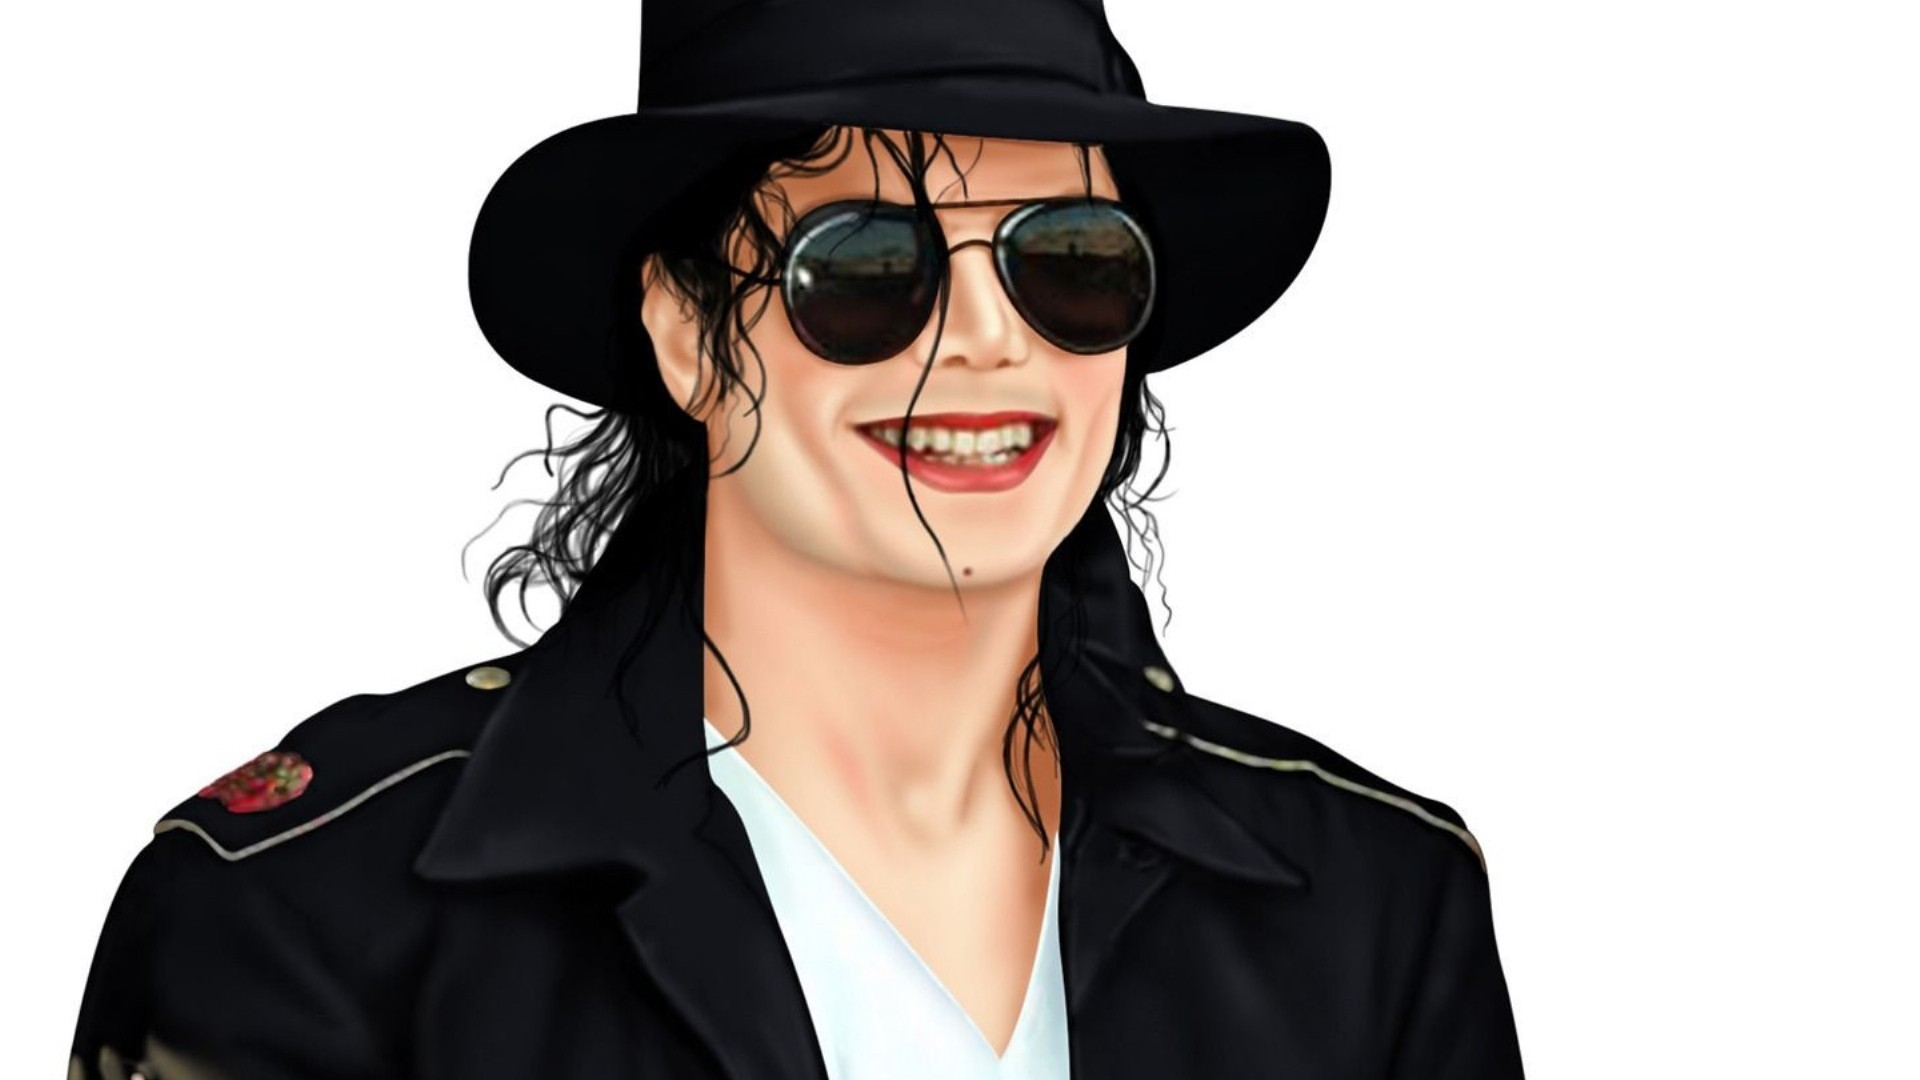 1920x1080 Michael-Jackson-background-hot-pic